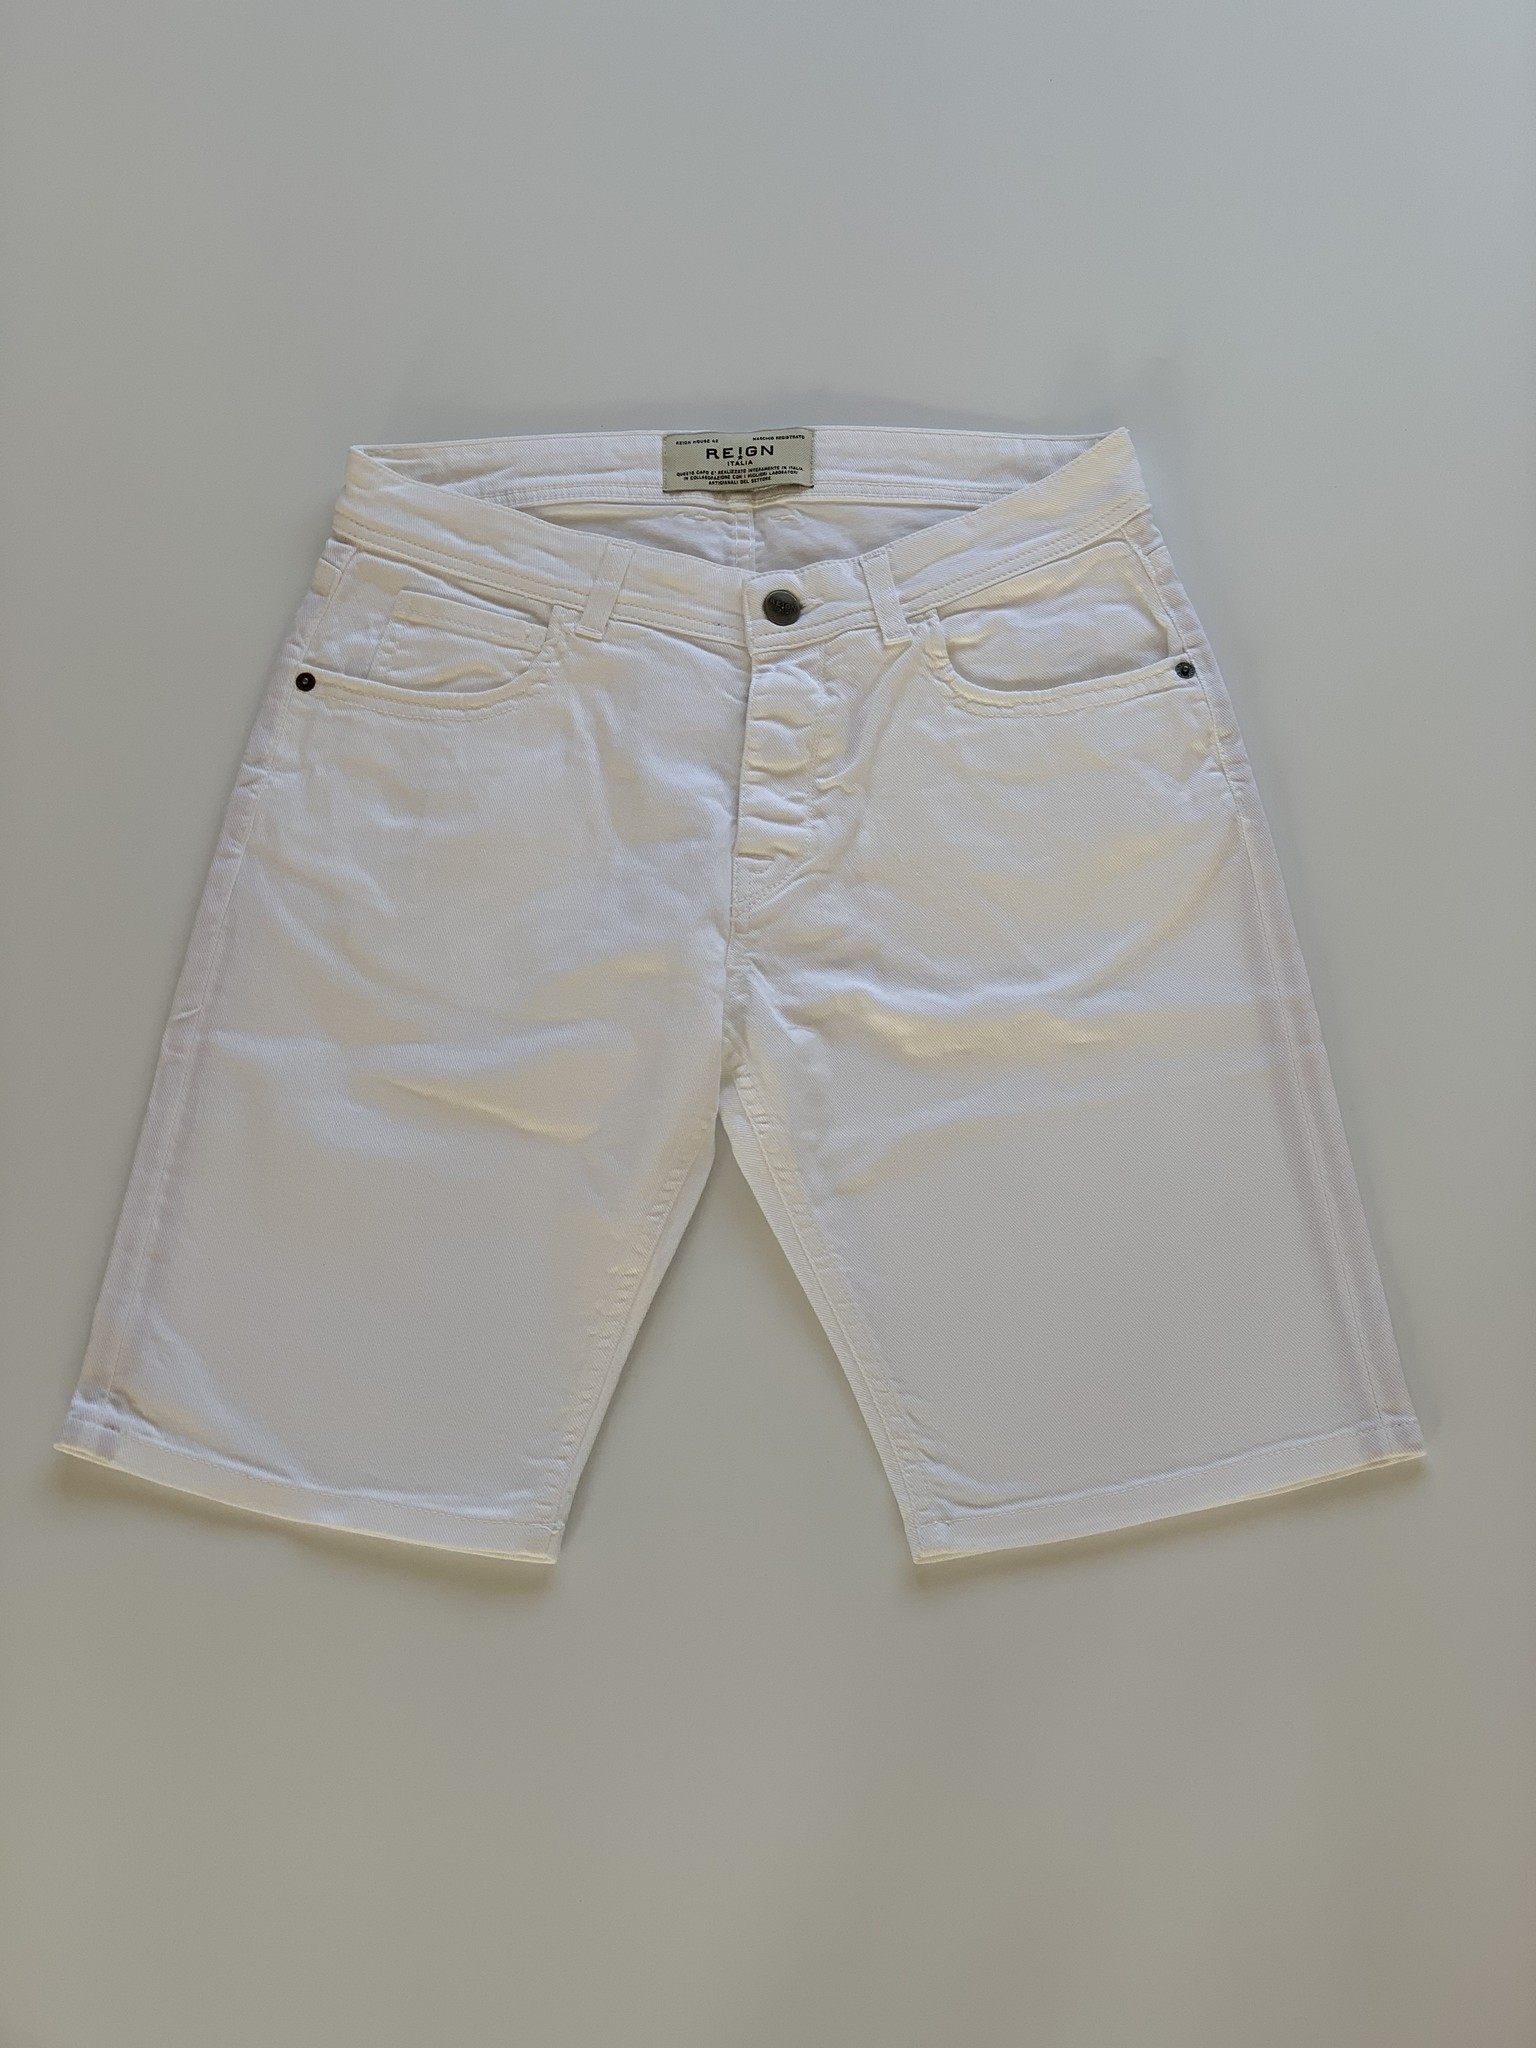 Ethan Pamplona Jeans Short-1